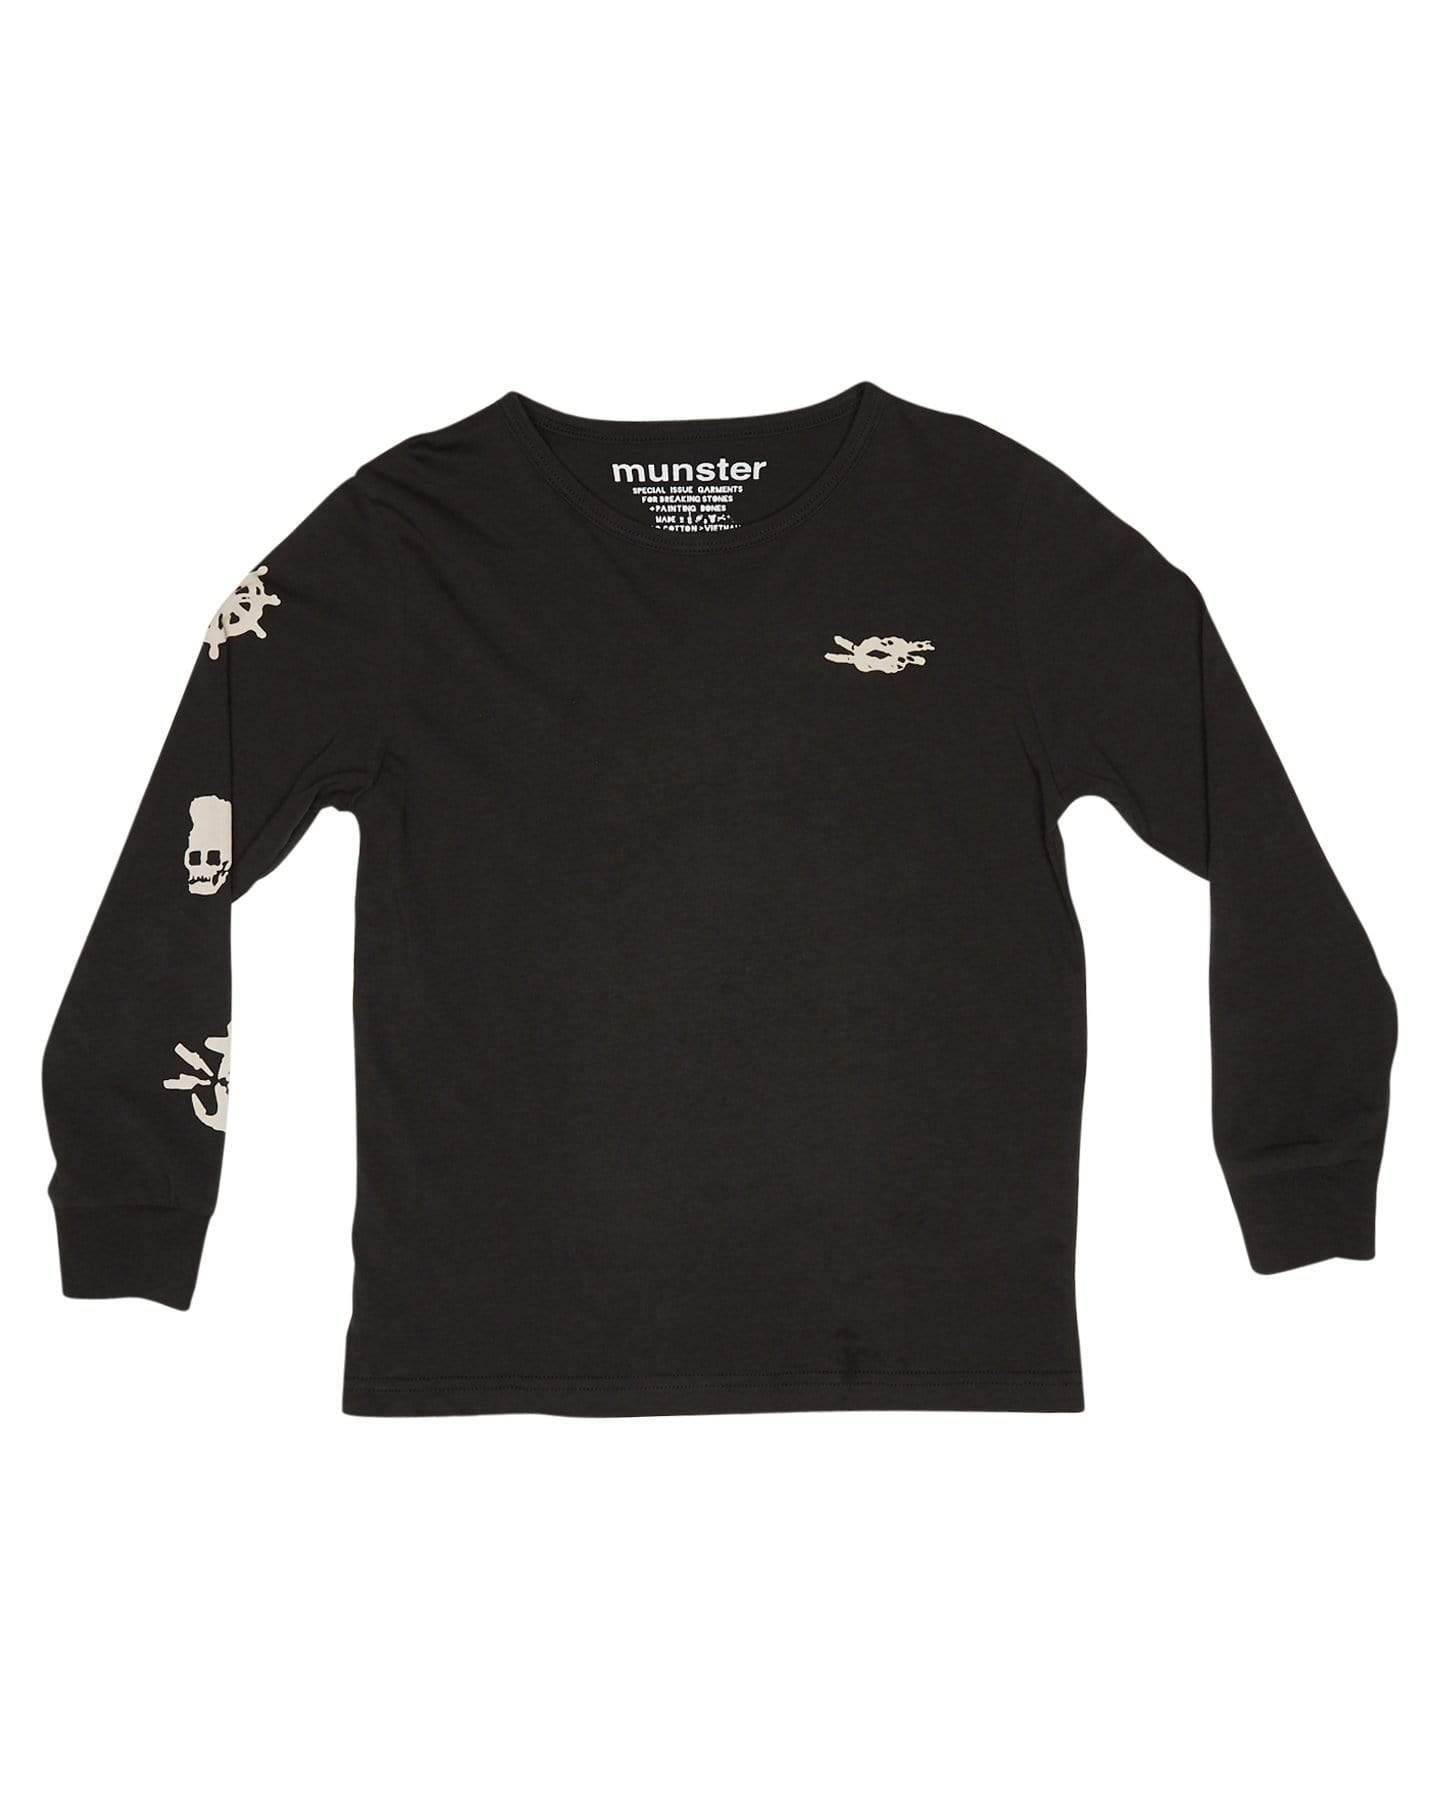 Munster Treasure L/S Tee